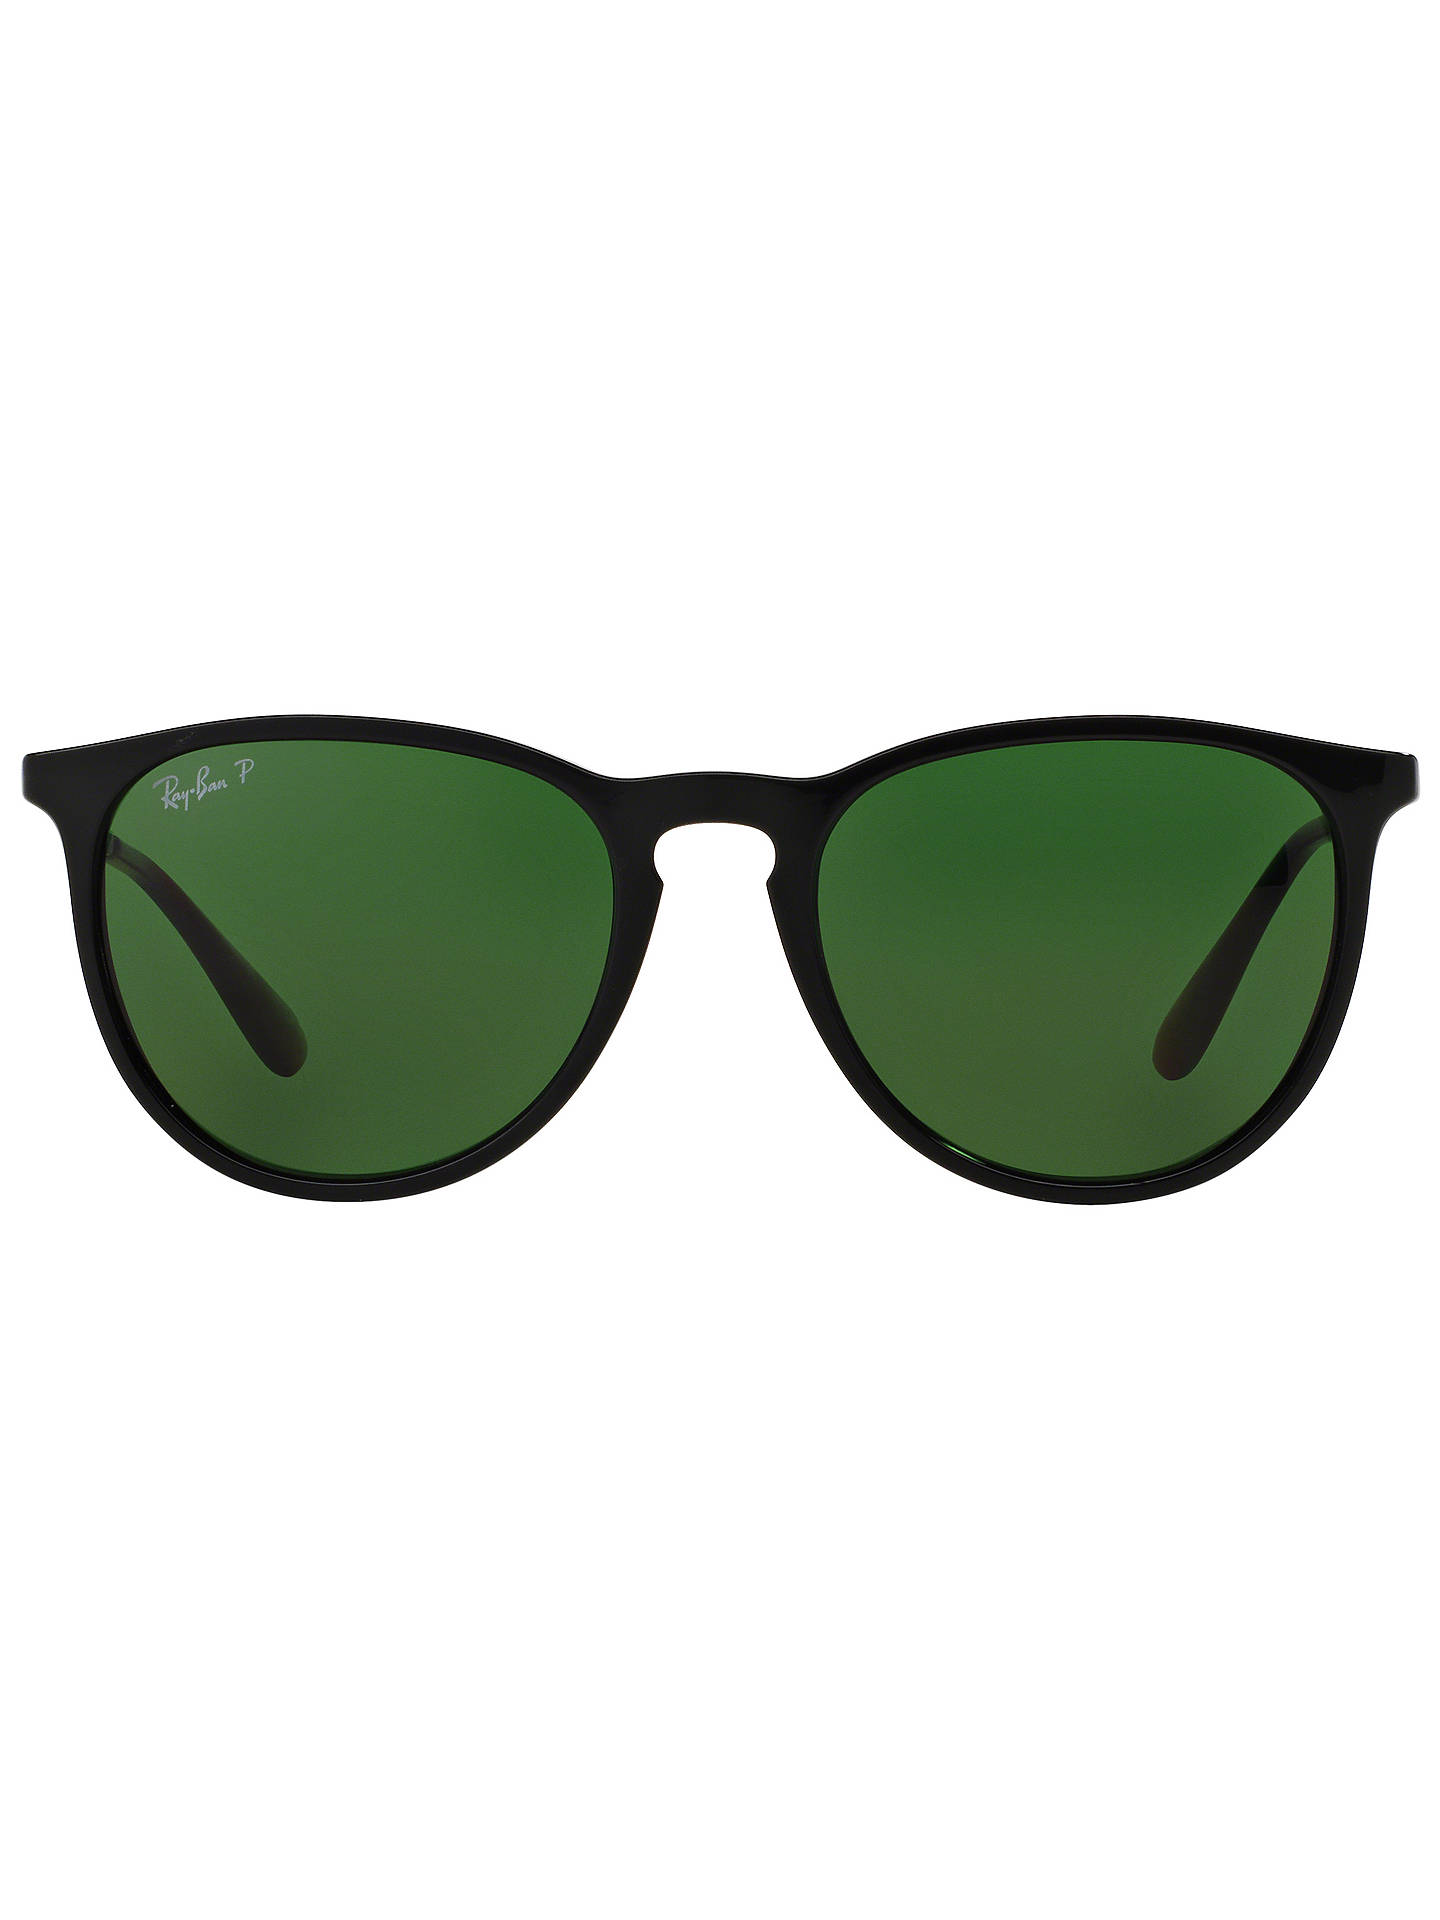 99d79beda9 ... Buy Ray-Ban RB4171 Women's Erika Polarised Oval Sunglasses, Black/Green  Online at ...